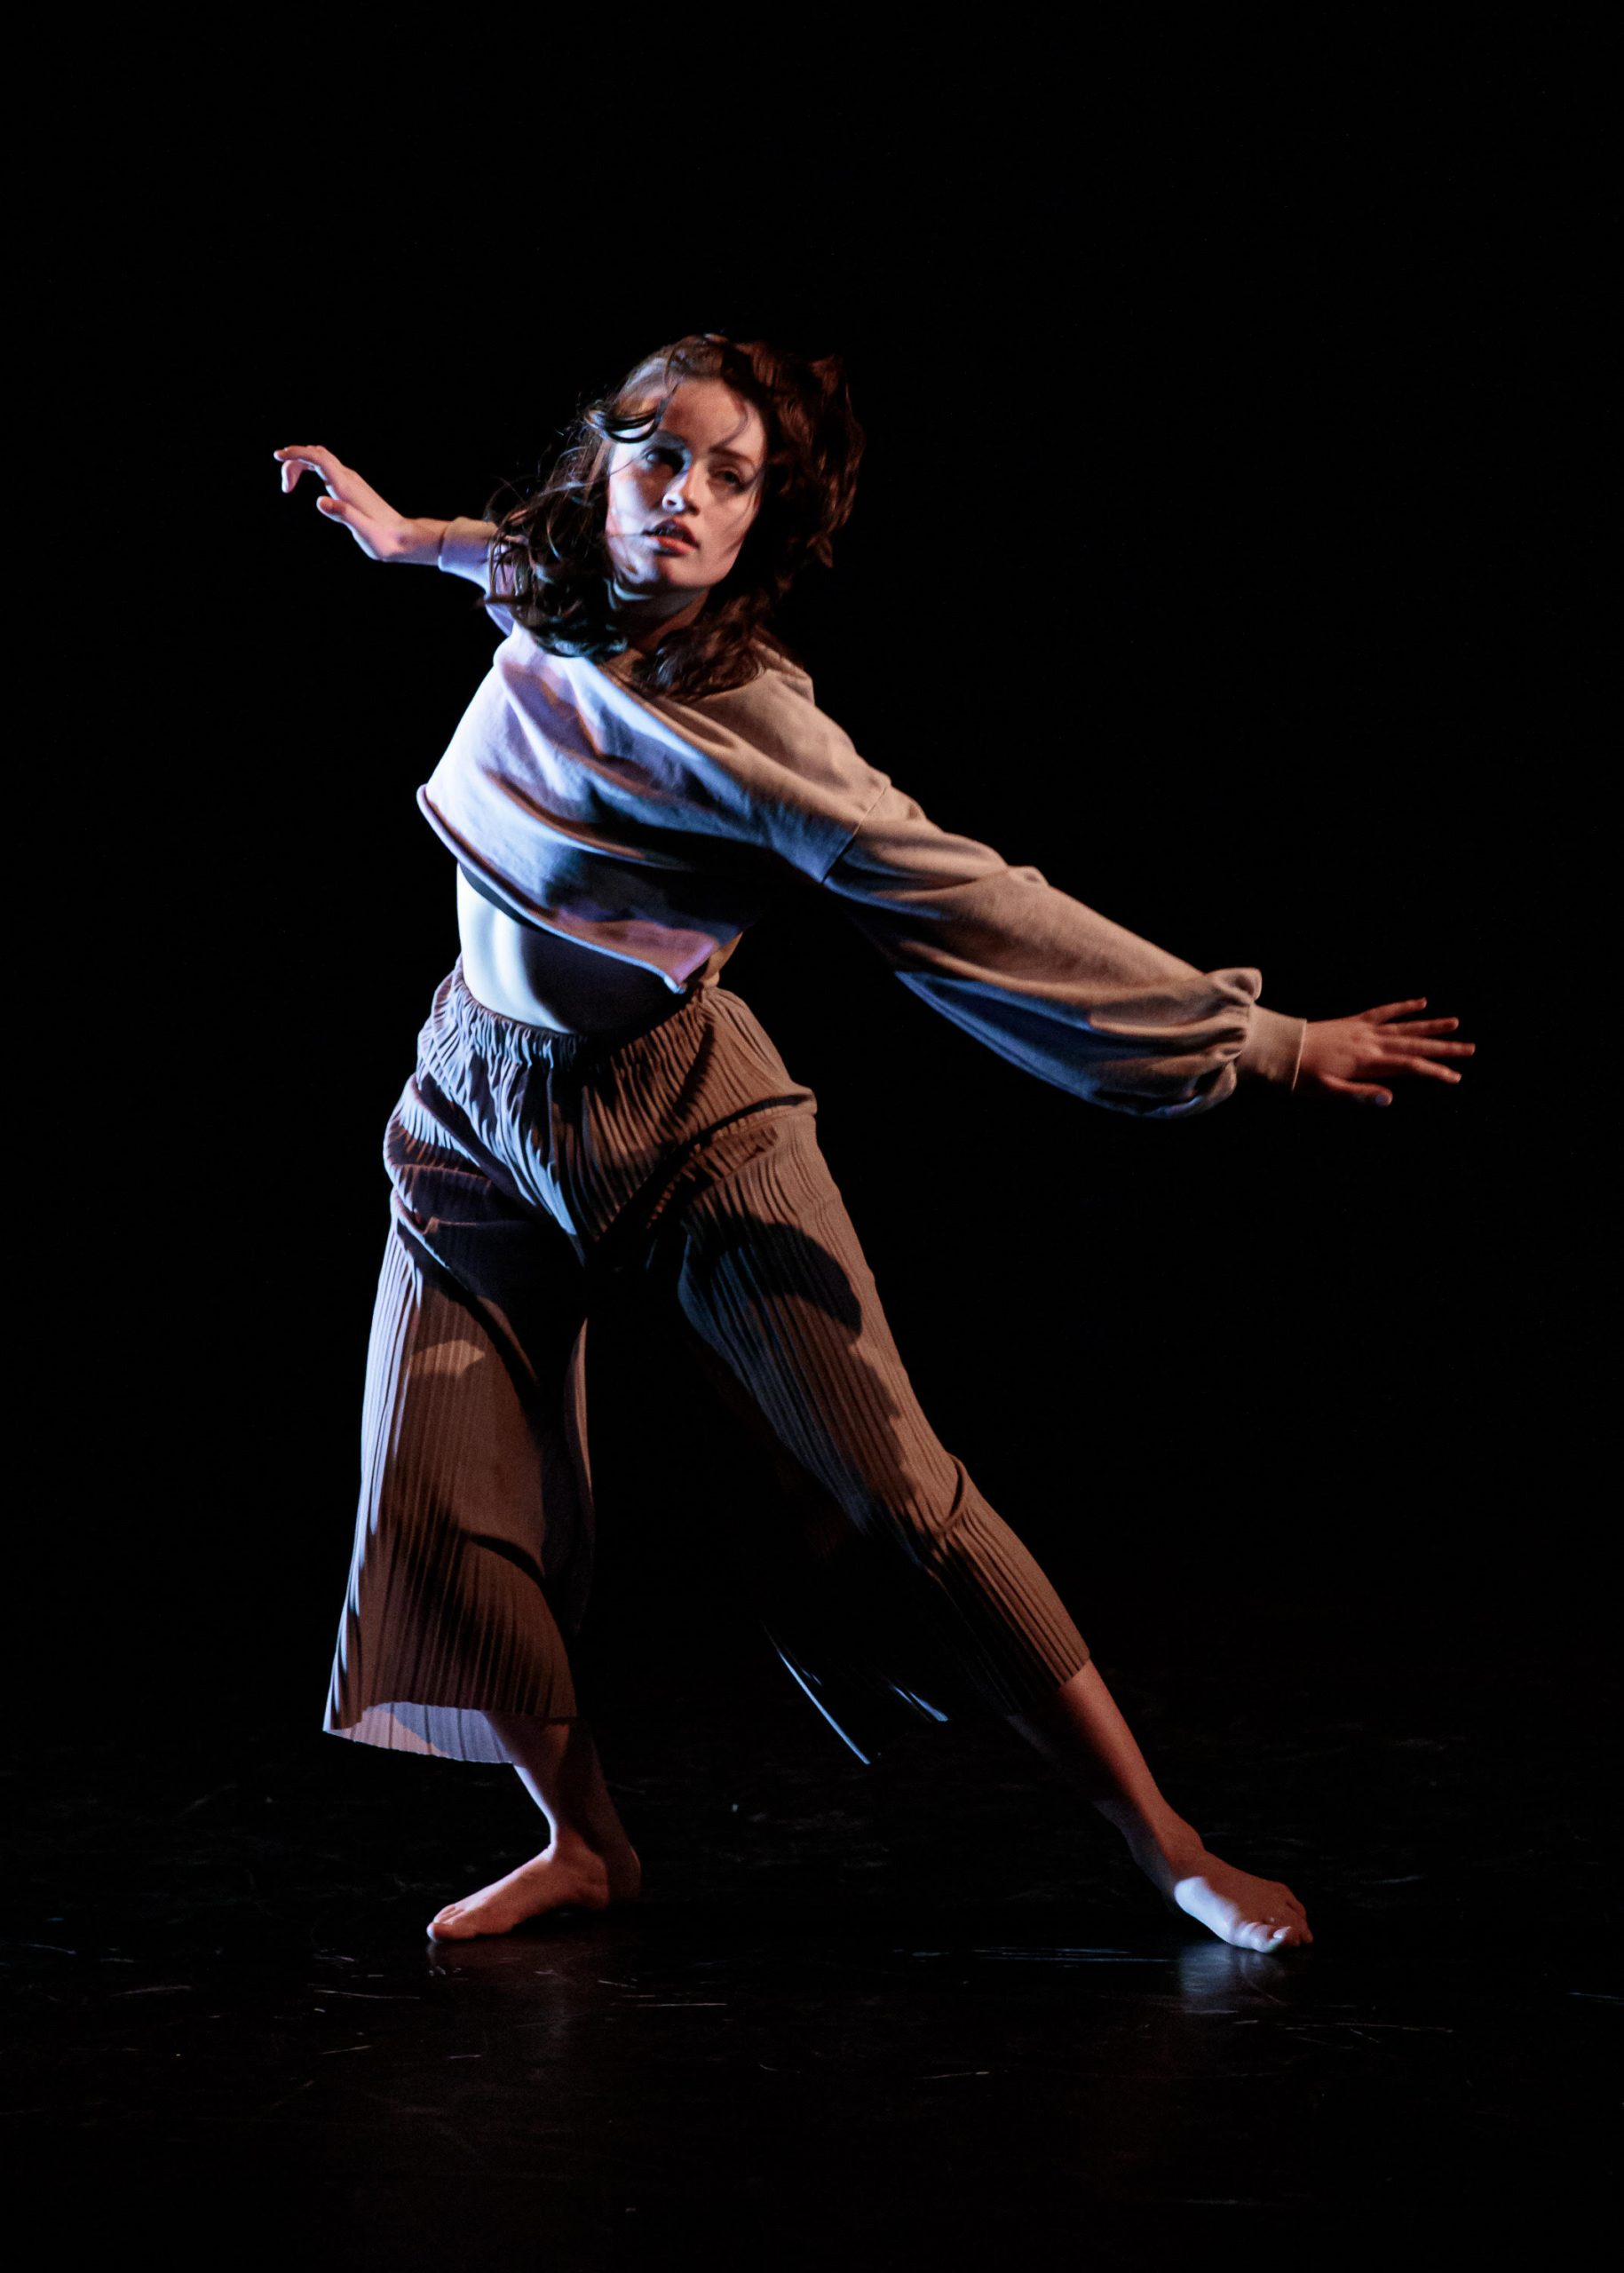 image of Amber performing a dance against a black background.